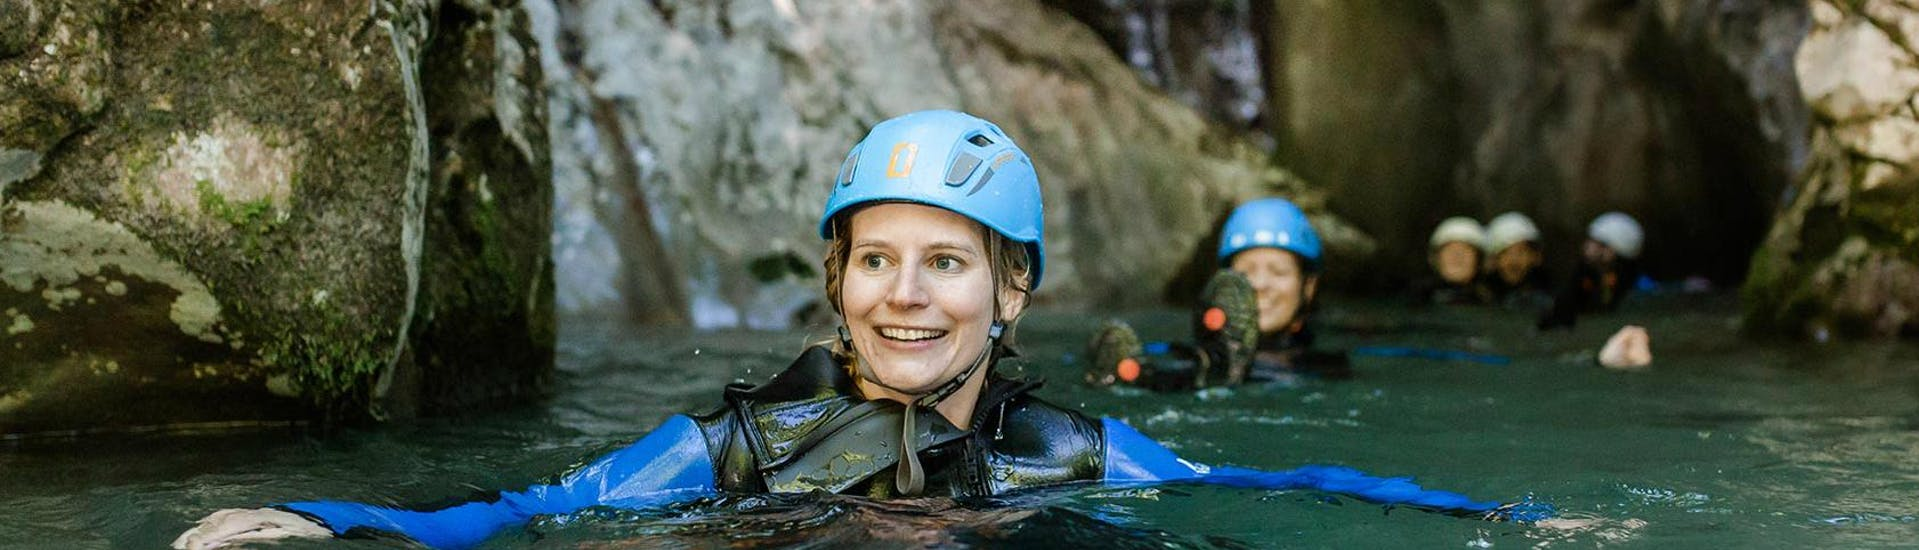 """During Canyoning """"Jump & Run"""" for Beginners - Seisenbergklamm with Base Camp, the participants are swimming through a deep section of the canyon."""